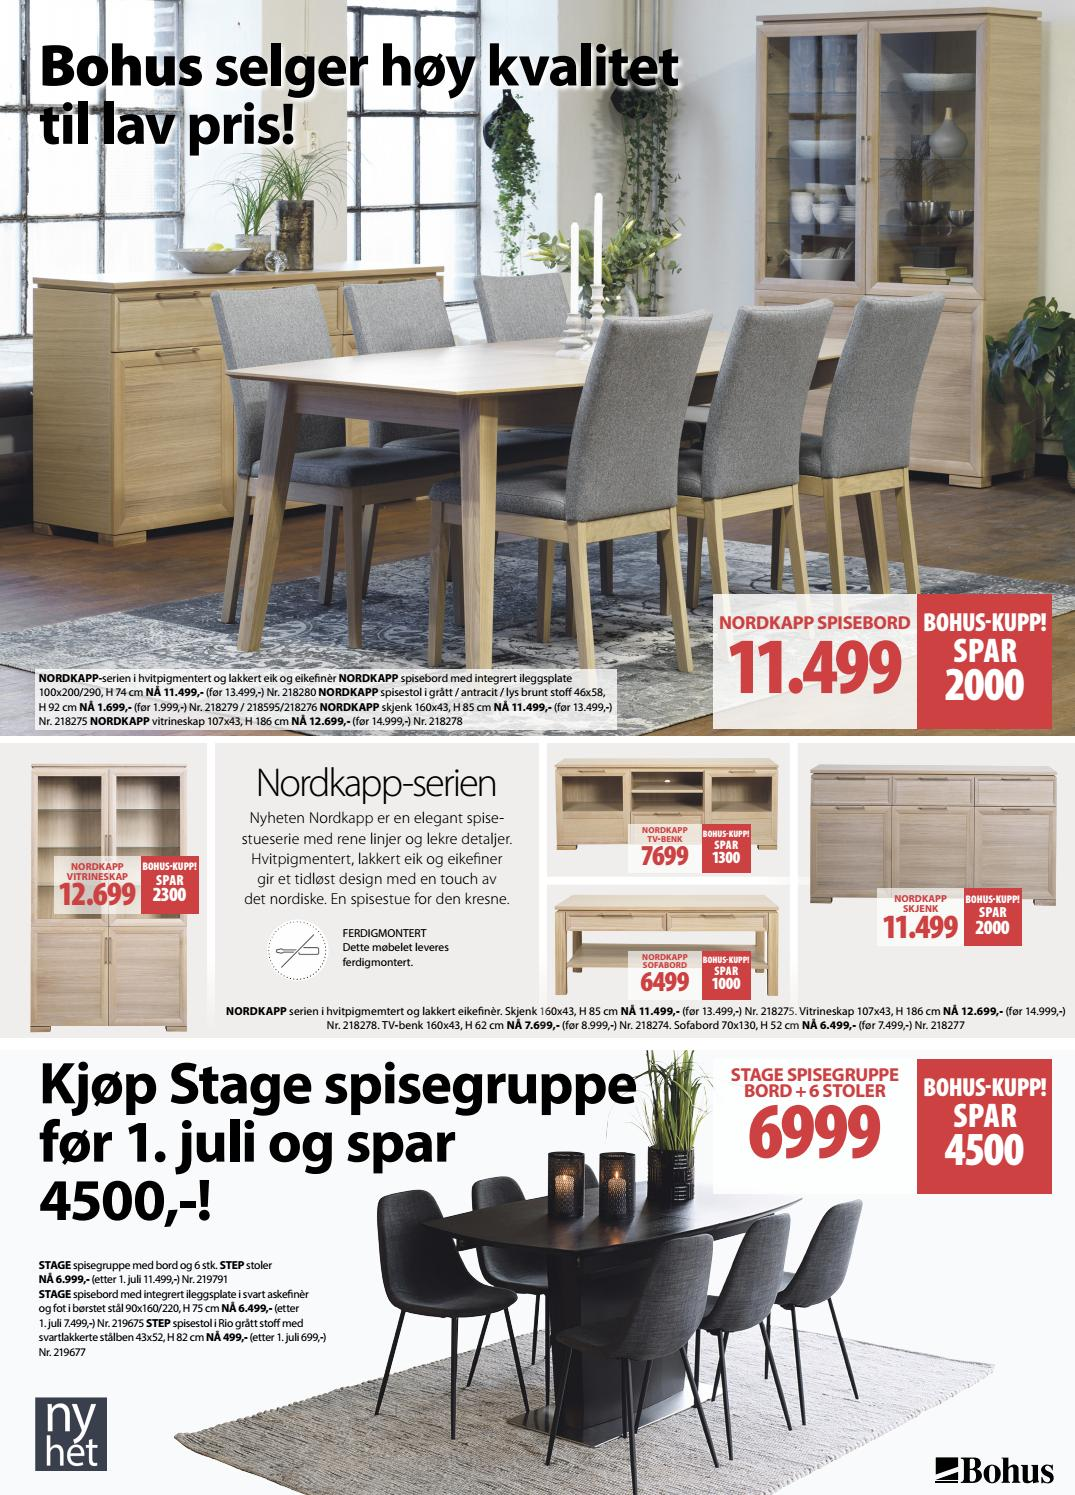 Picture of: Bohus Annonse Bergensmagasinet 20 Juni 2018 By Mistrol Reklamebyra Issuu